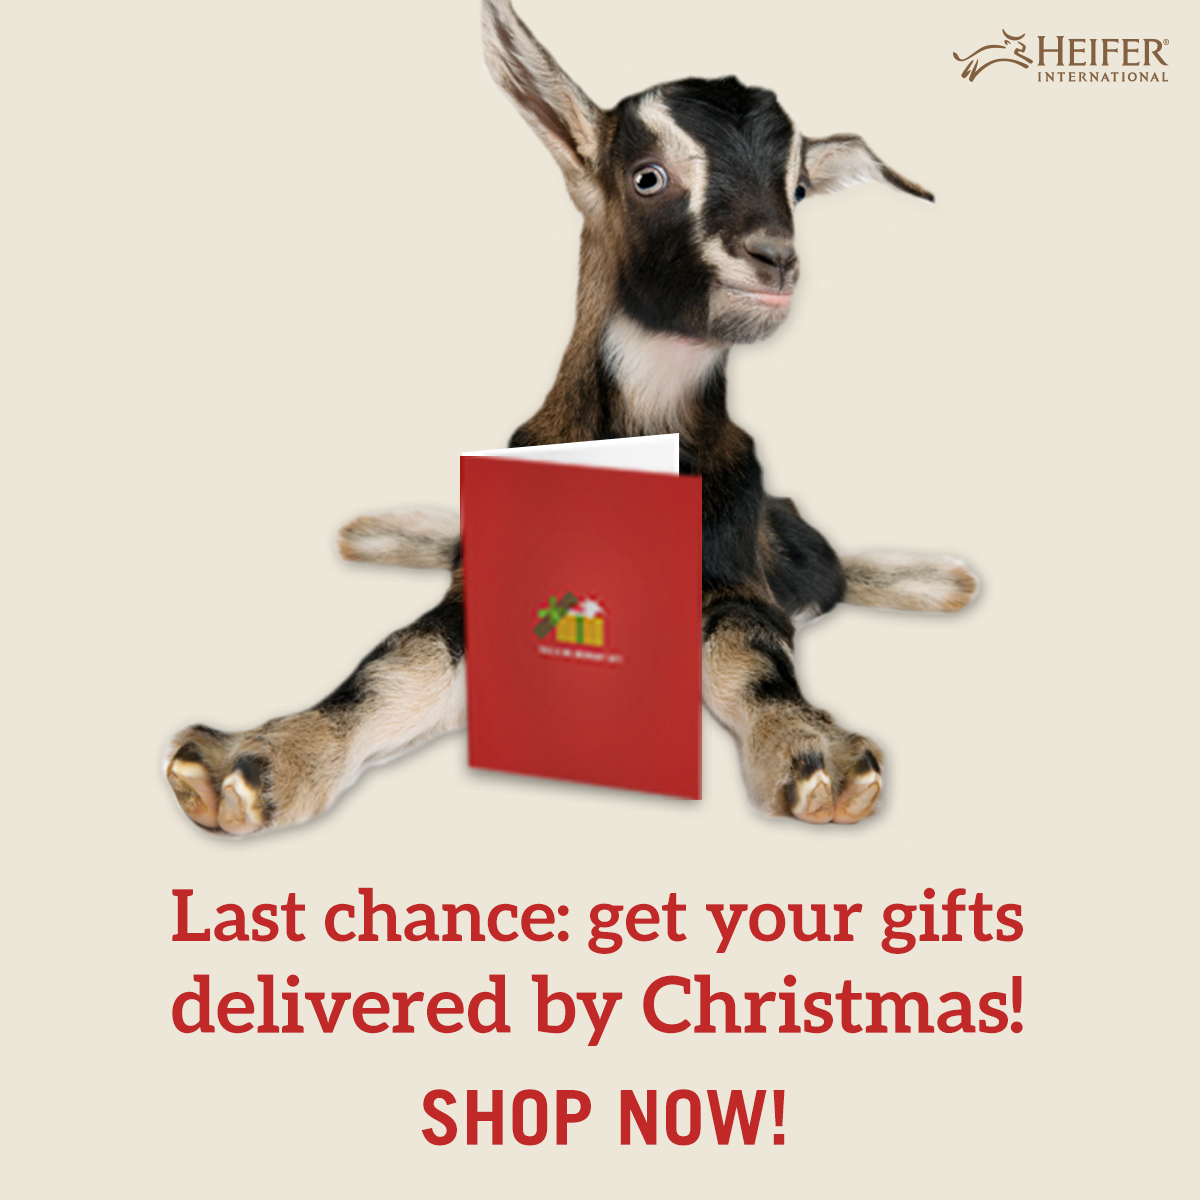 Giving your friend a Heifer gift this Christmas? The deadline to have an honor card mailed to them by Christmas Eve is December 11th!